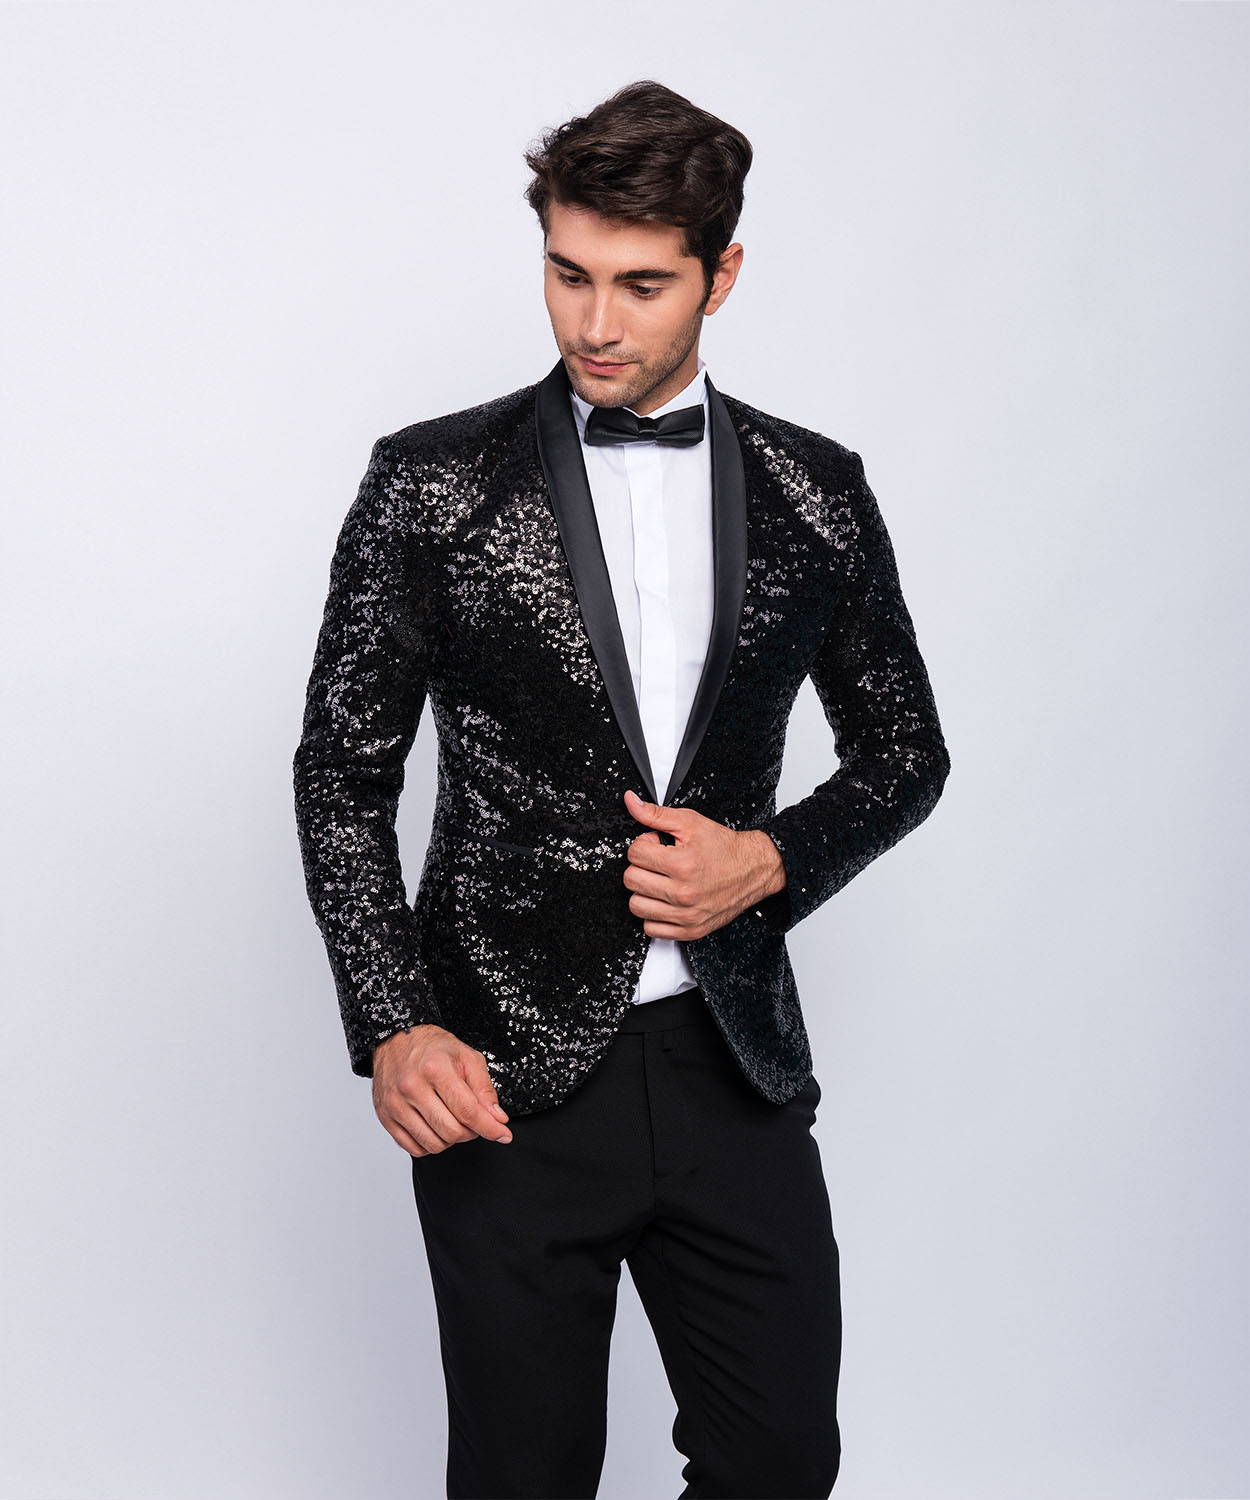 slim fit herren pailetten smoking in schwarz mit fliege anzug hochzeit b hne ebay. Black Bedroom Furniture Sets. Home Design Ideas